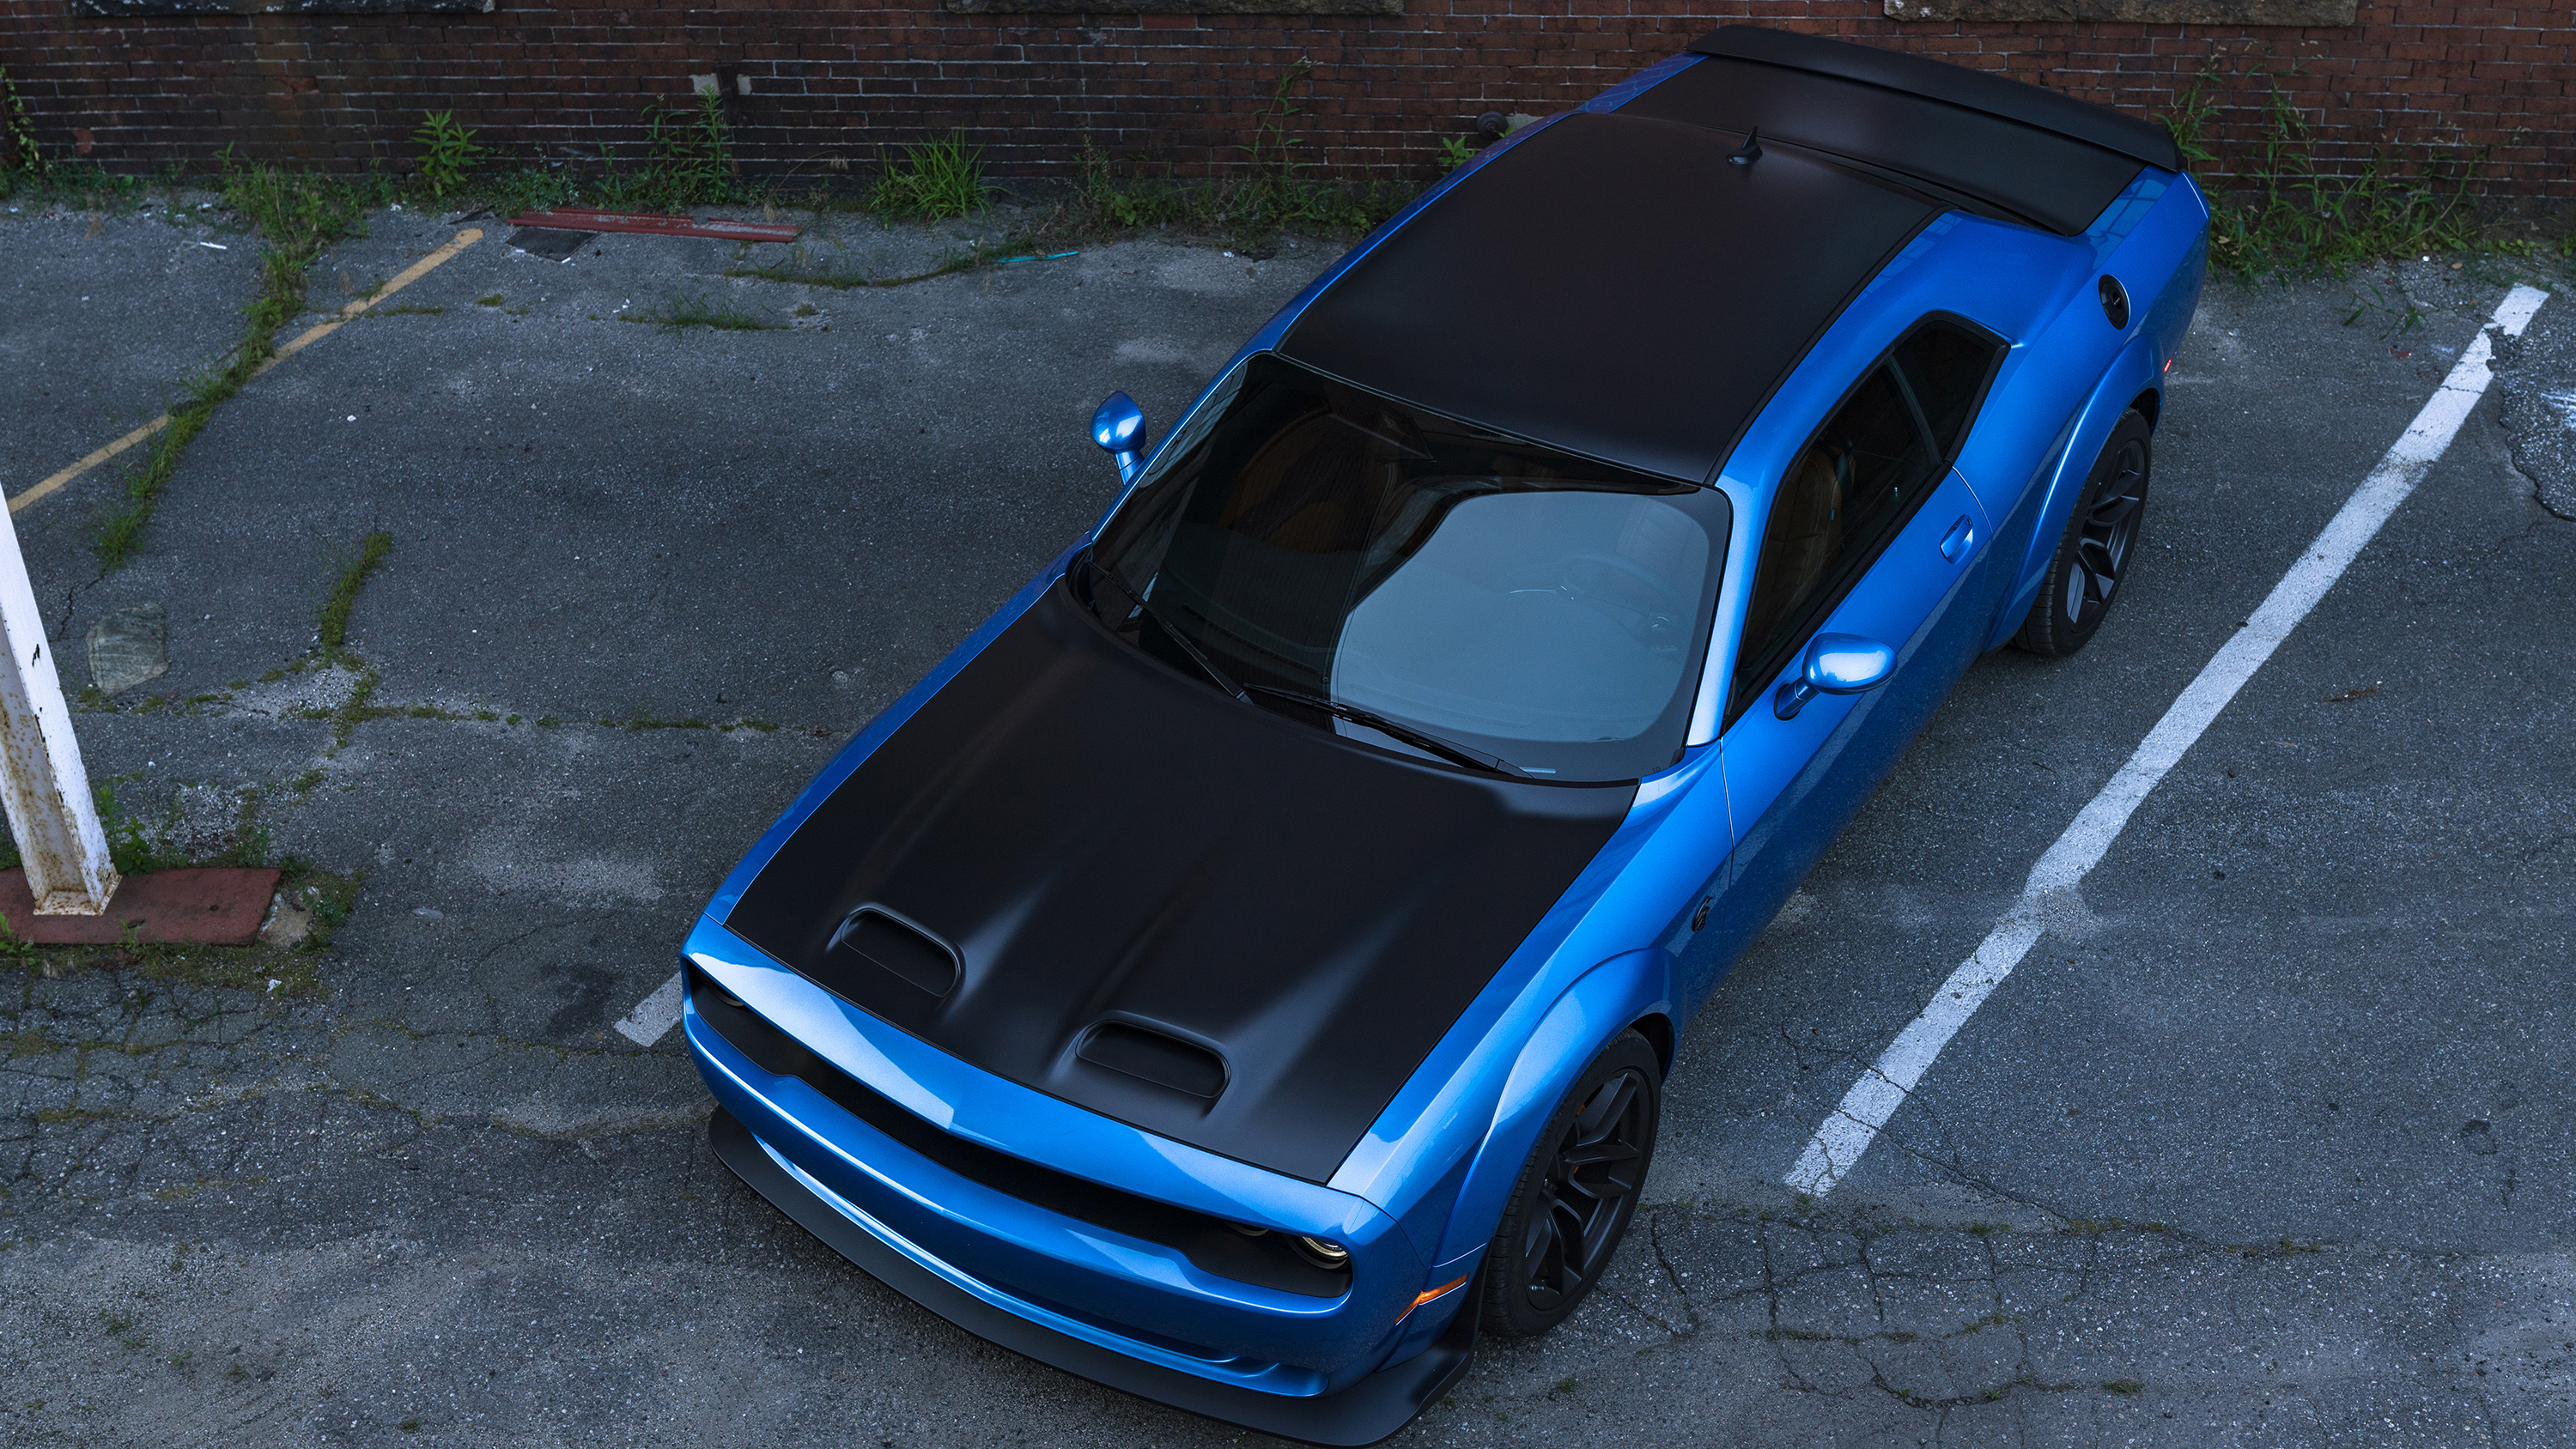 2019 Dodge Challenger Srt Hellcat Redeye Widebody Wallpaper Hd Car Wallpapers Id 11073